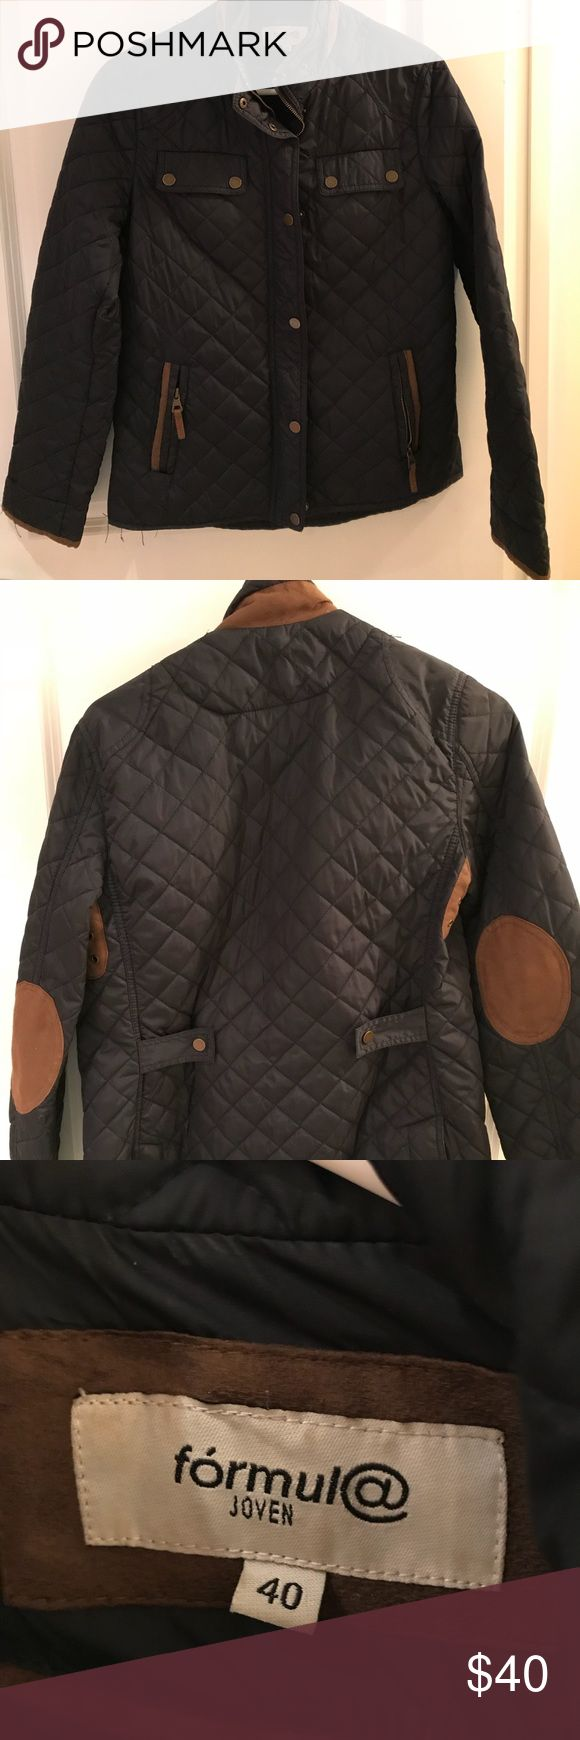 Navy/Tan Quilted Elbow Patch Jacket Size 10 Medium Navy quilted polyester jacket with cognac faux suede details. Perfect piece for a chilly fall day! Adjustable waist sizing with back clip features. Slight pulls along right sleeve and along bottom (pictured). Otherwise, jacket in great condition.   Measurements  Length- 24 inches Width- 20 inches  Arms- 23 inches Jackets & Coats Puffers